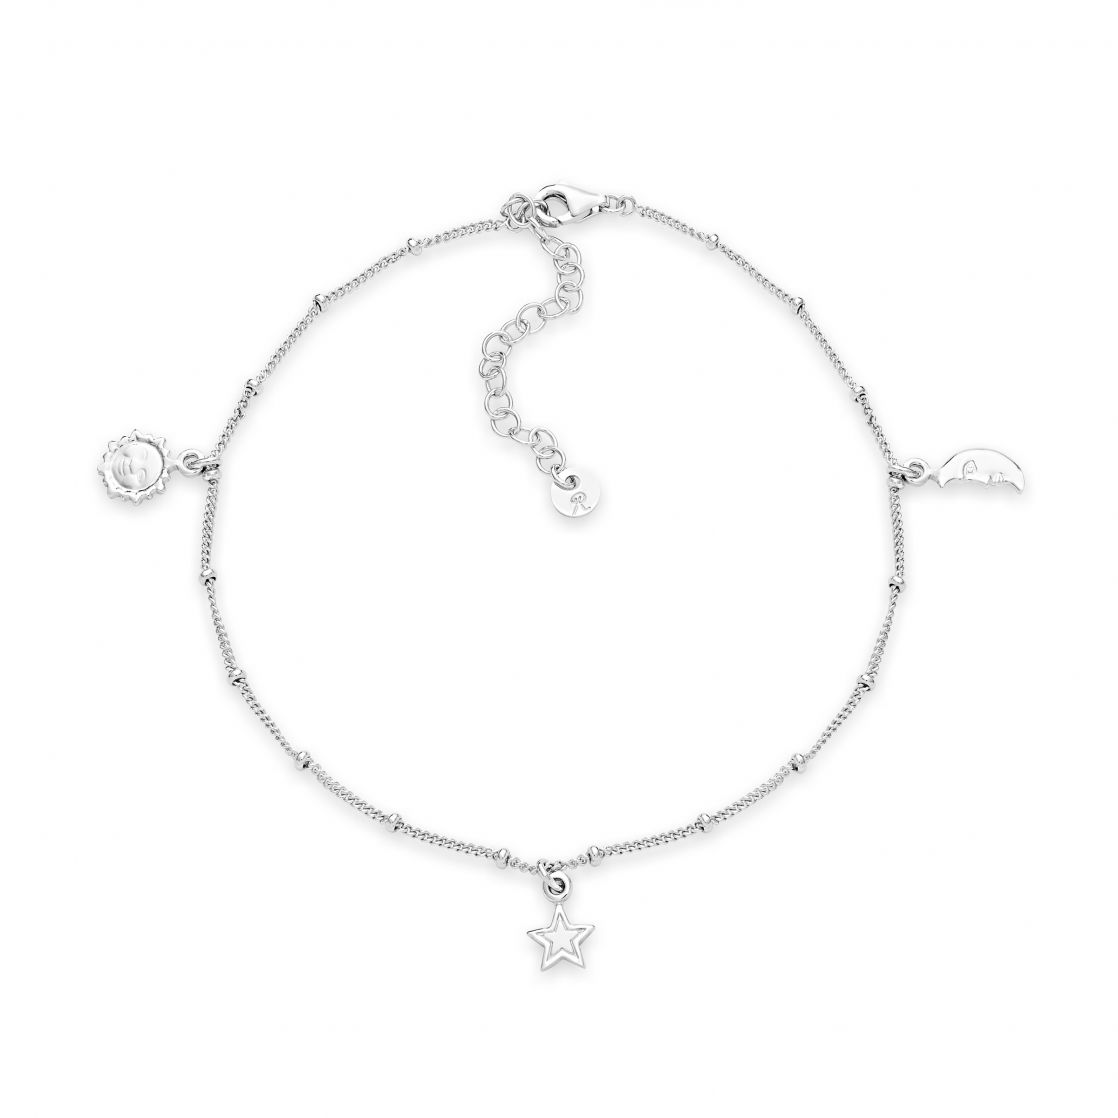 Anklet with moon star and sun